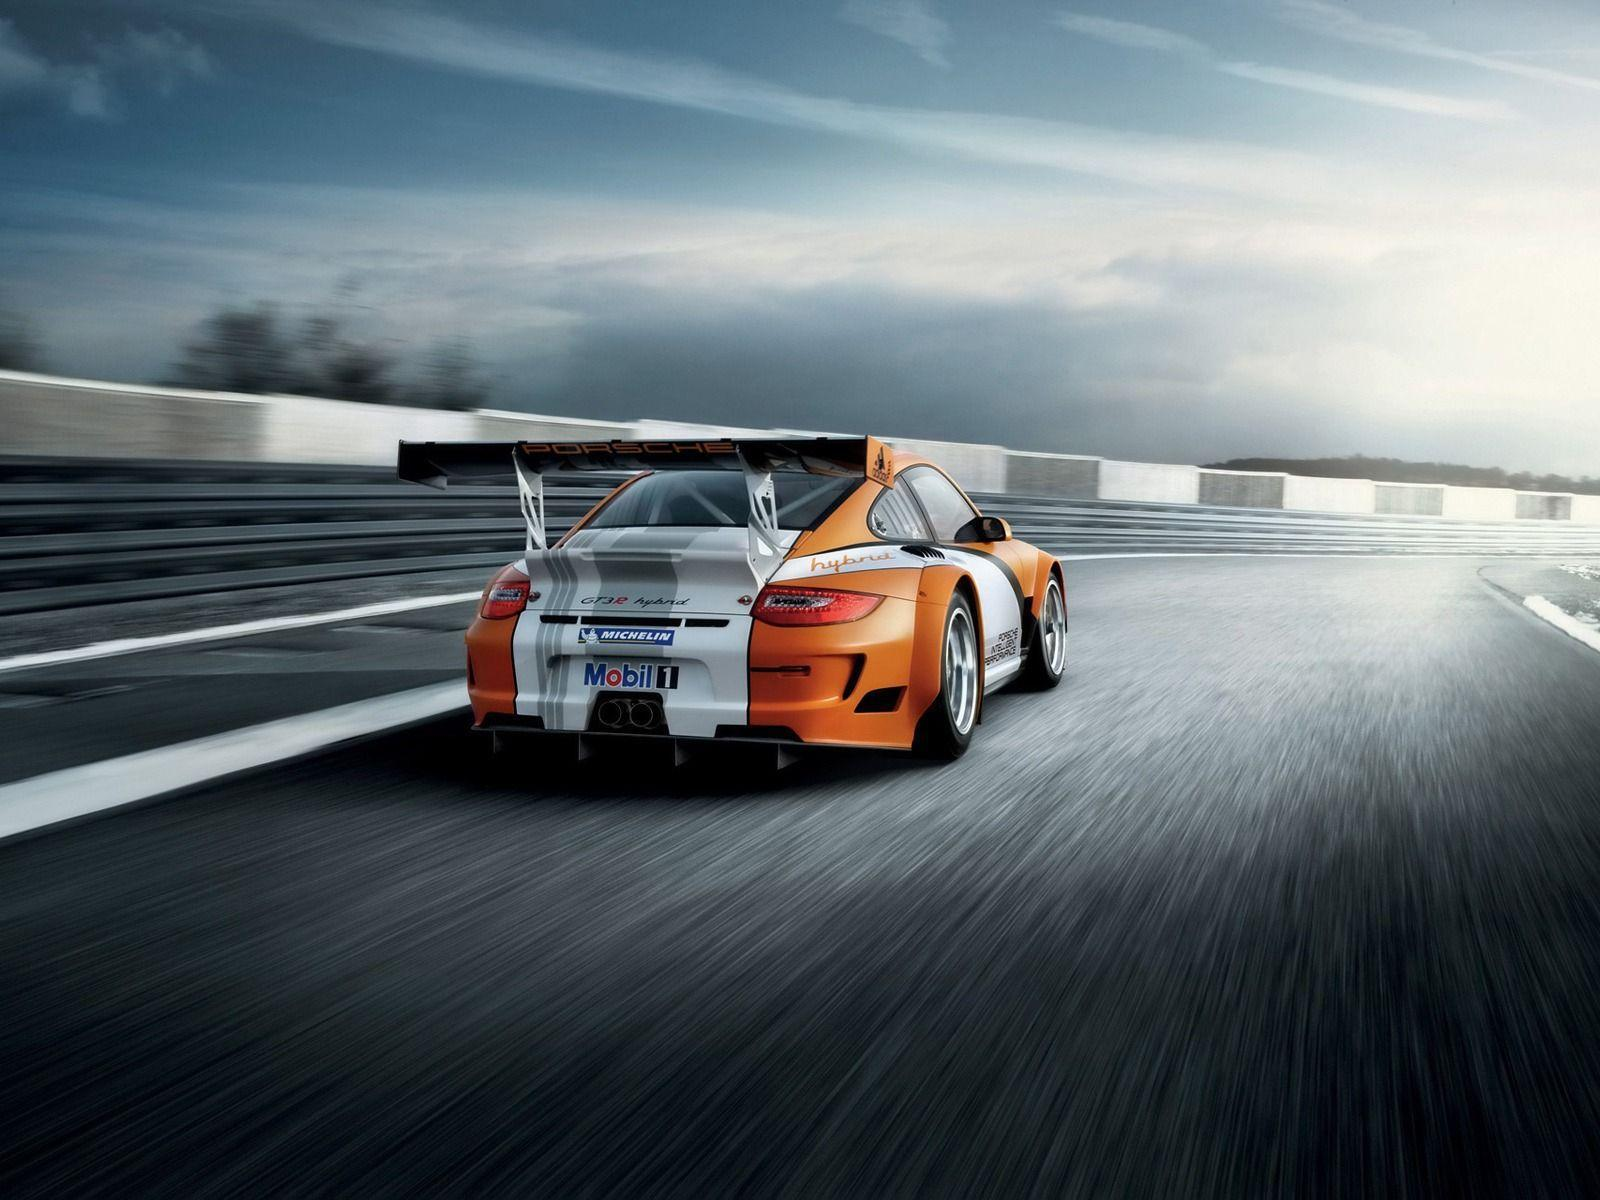 Awesome Porsche 911 Wallpaper 20589 1600x1200 px ~ HDWallSource.